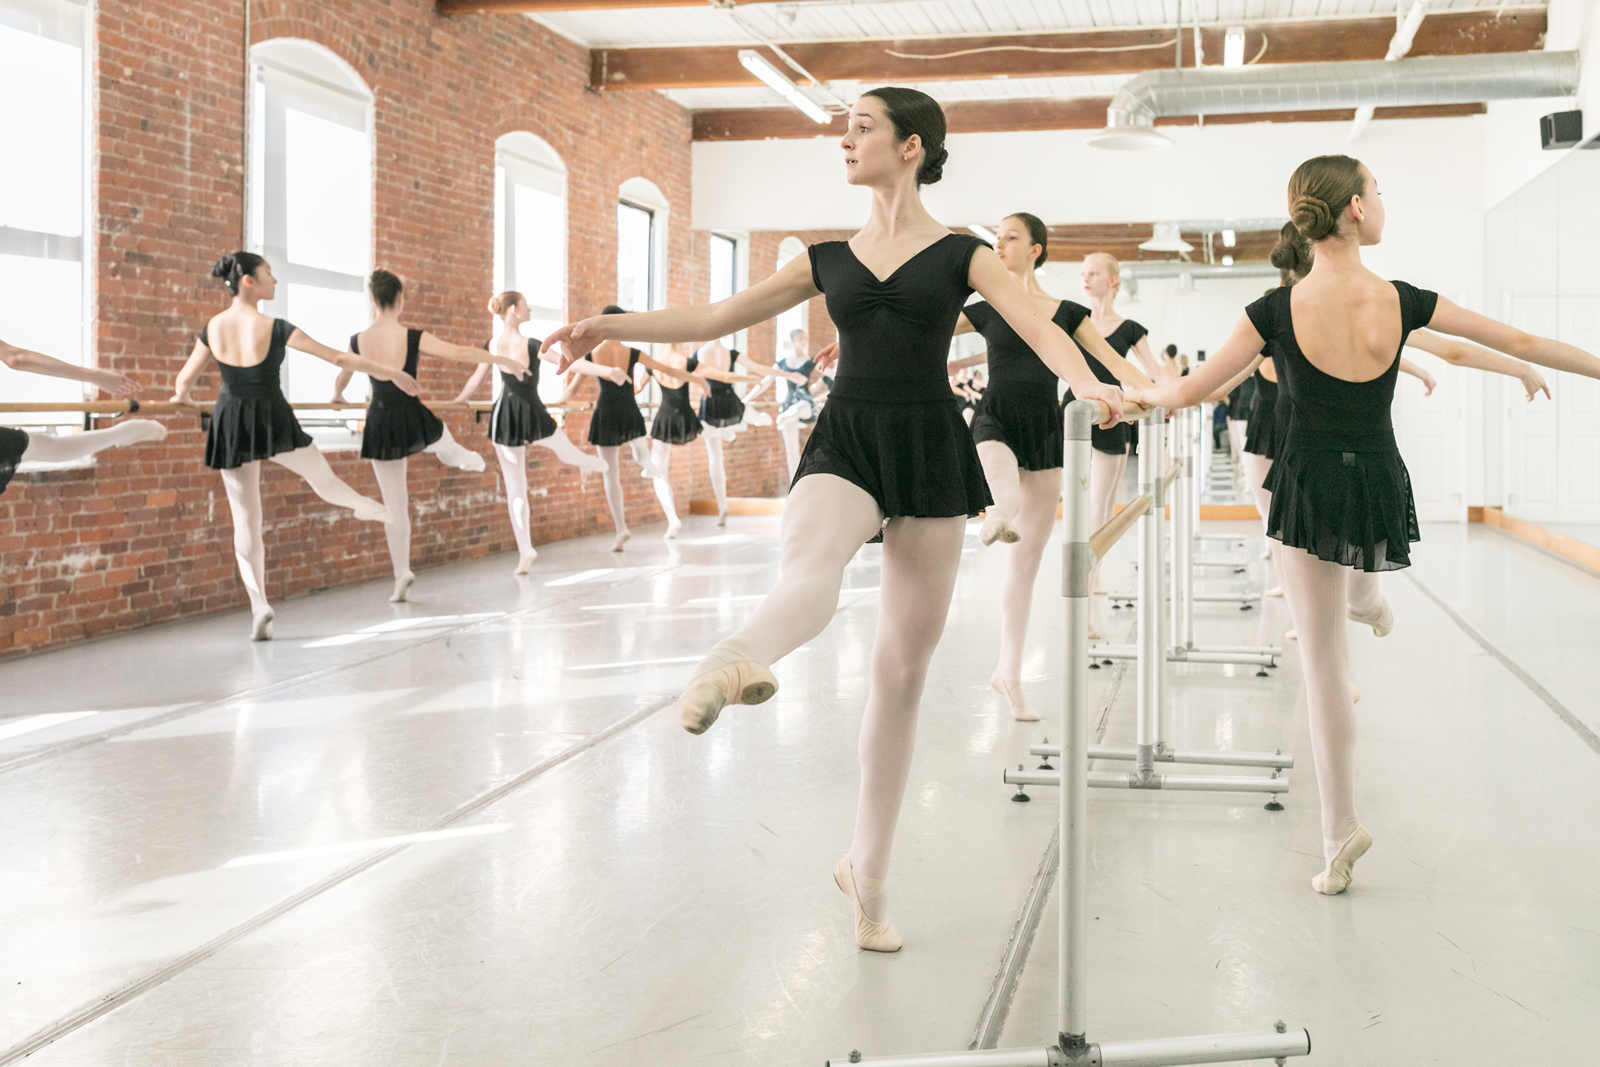 Greenwich Ballet Academy teaches classical ballet instruction